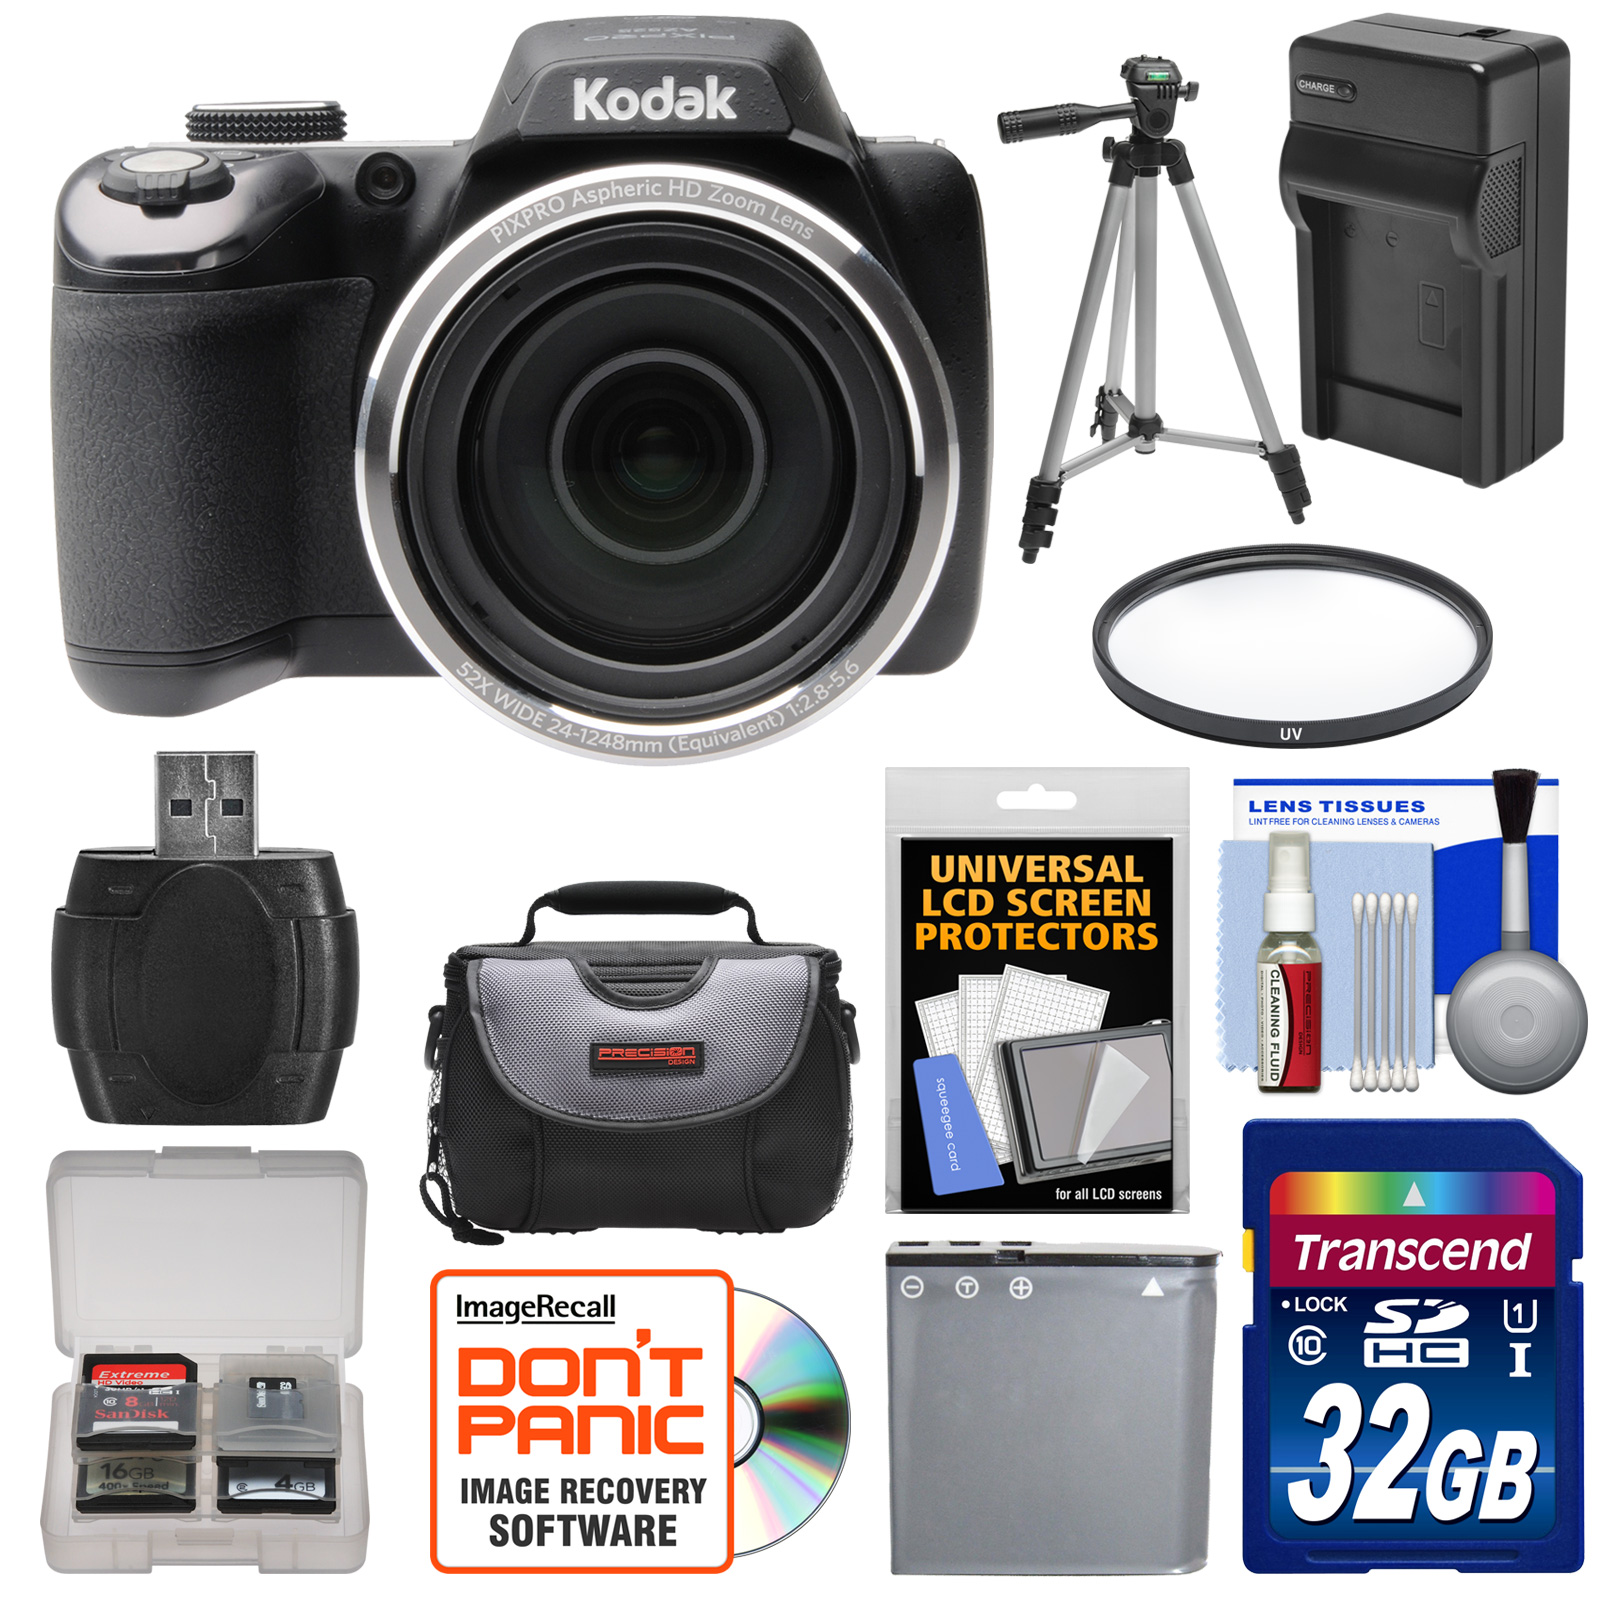 Kodak PixPro AZ525 Astro Zoom Wi-Fi Digital Camera with 32GB Card + Battery & Charger + Case + Tripod + Filter + Kit